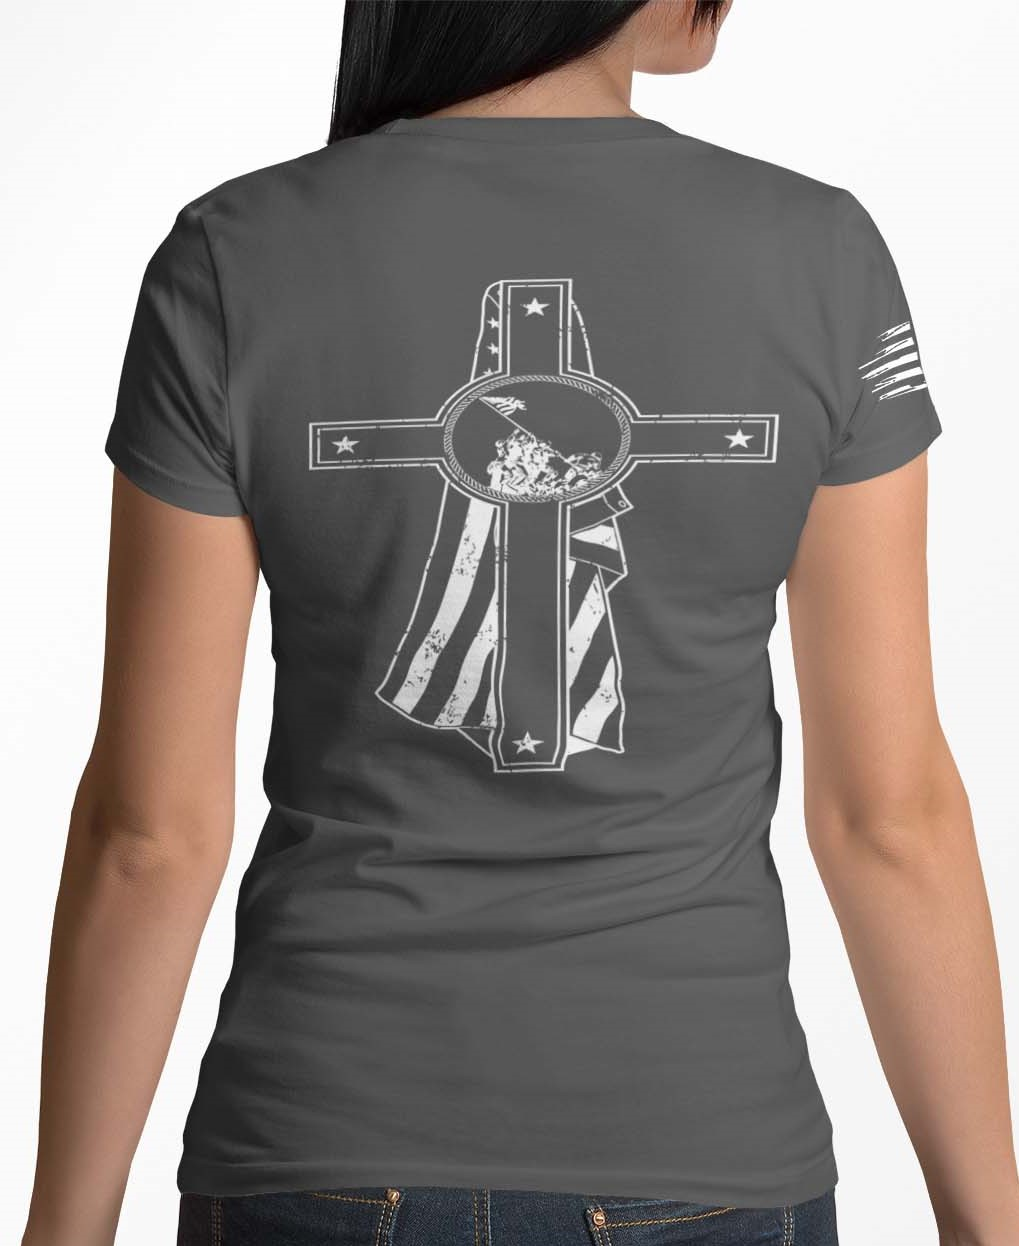 Memorial Day on a womens charcoal tshirt